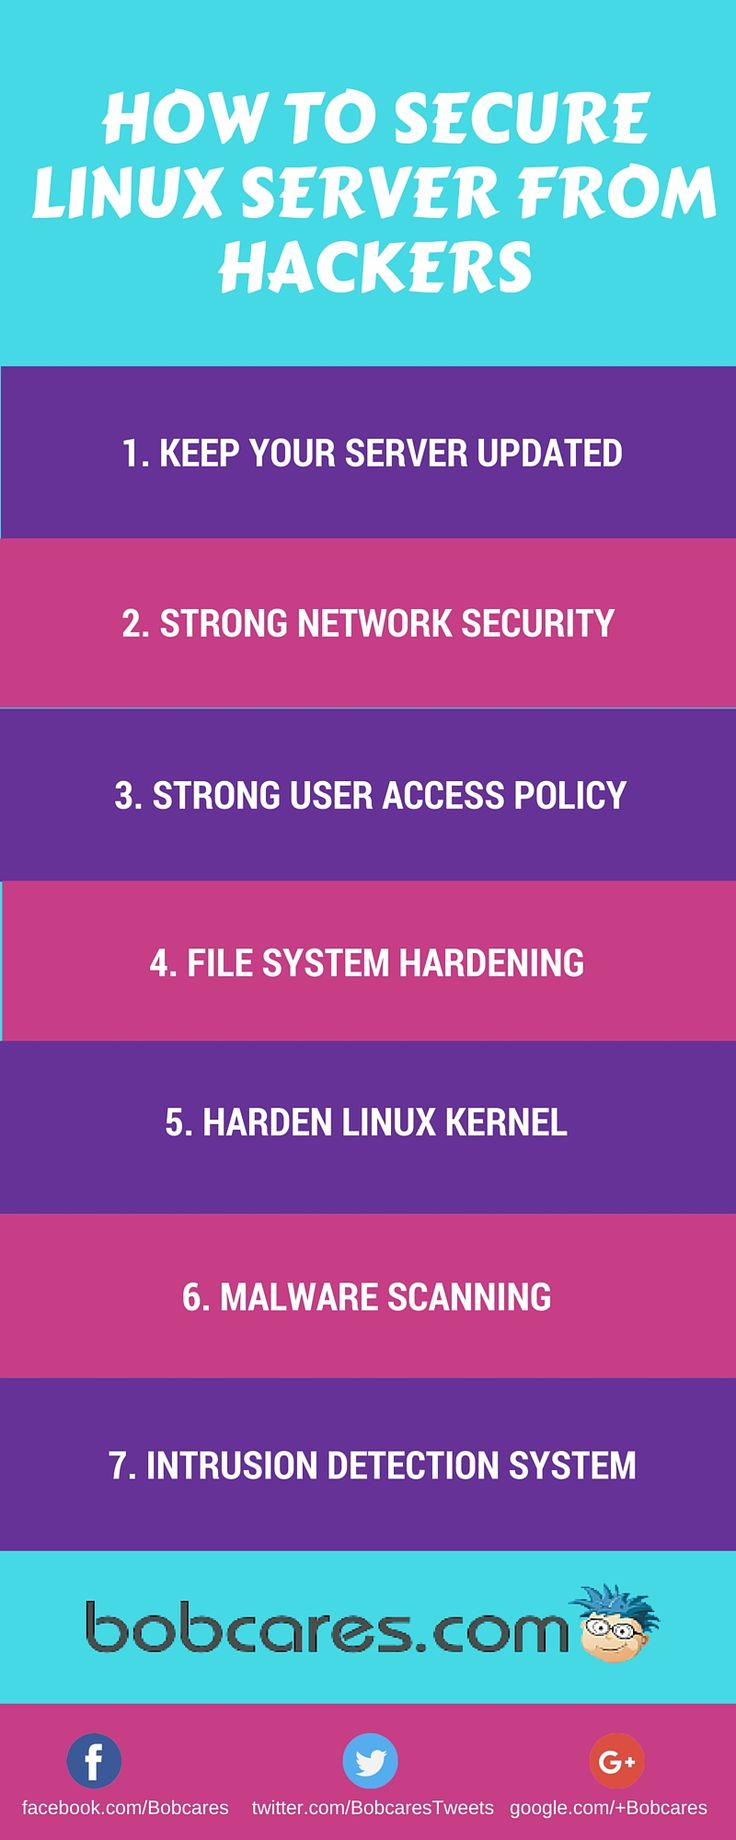 How to secure linux server from hackers